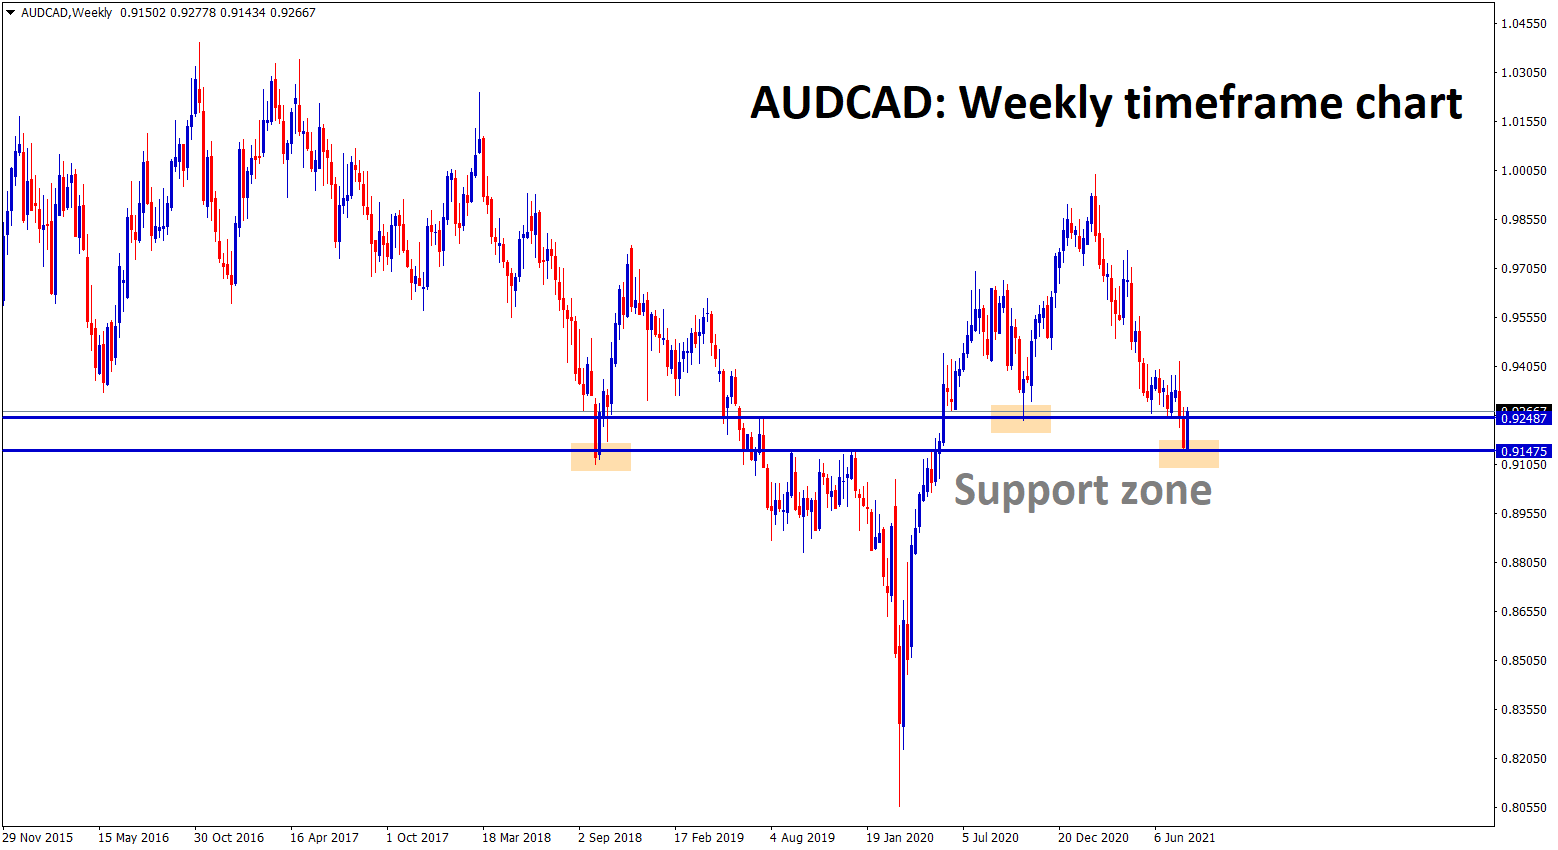 AUDCAD is bouncing back from the strong support zone fake breakout occurs comparing with recent support